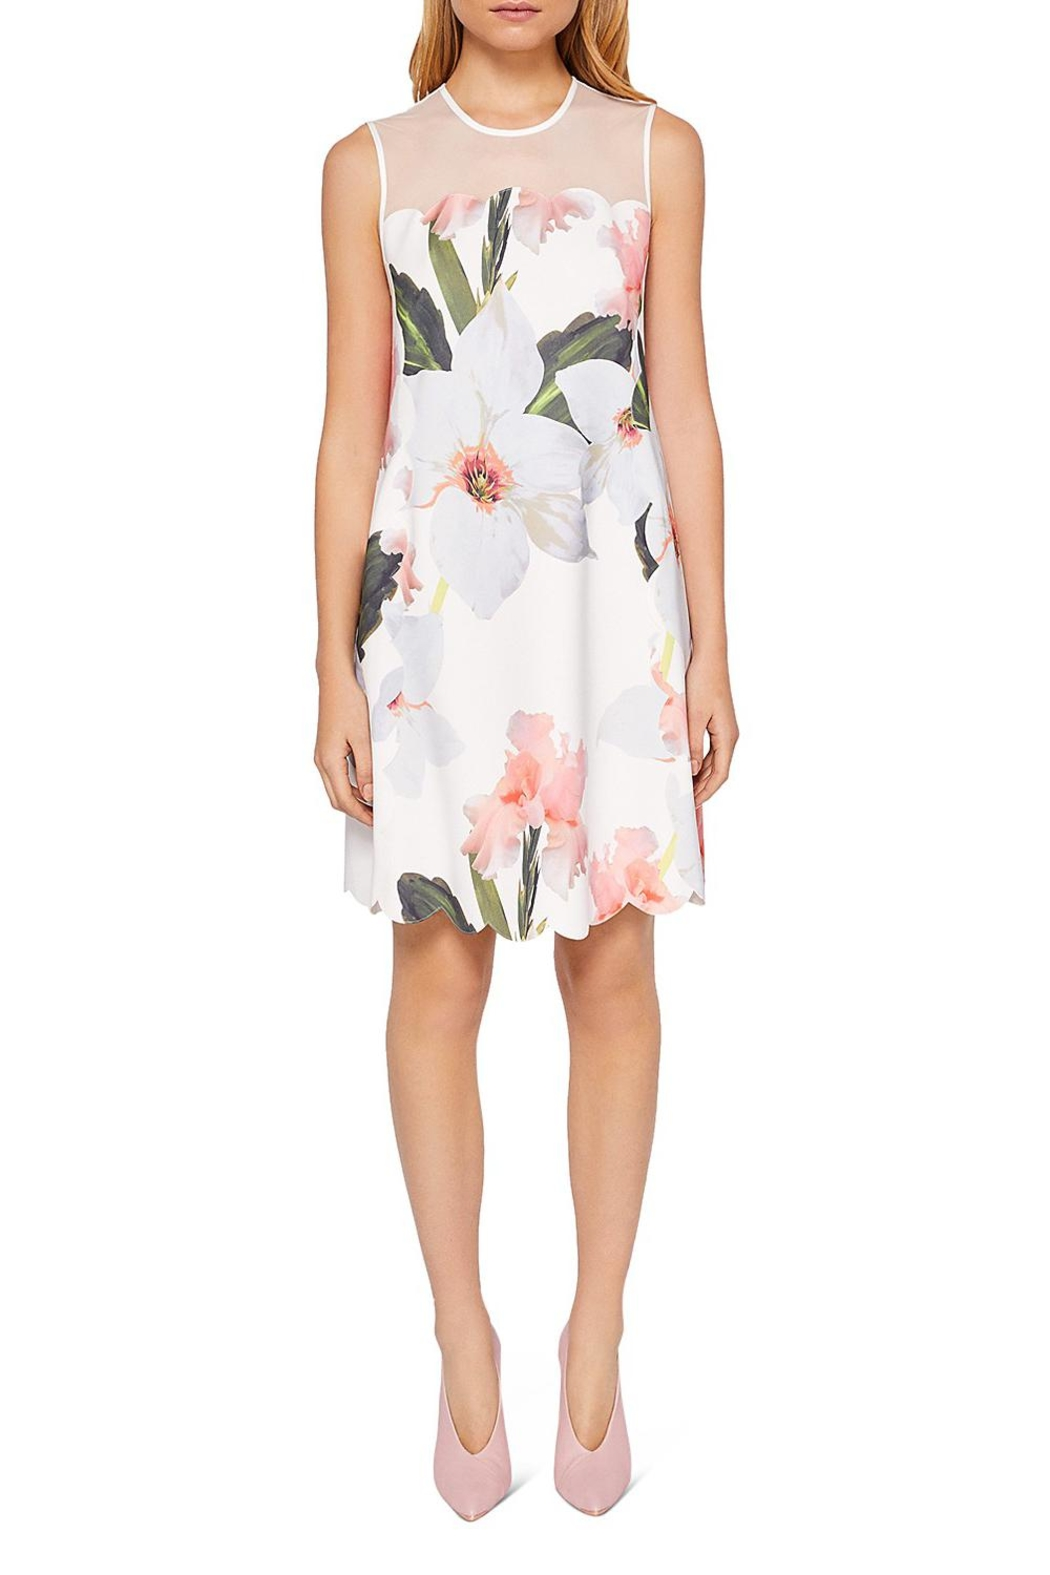 Ted Baker Caprilla Dress From Wallingford By The Dressing Room